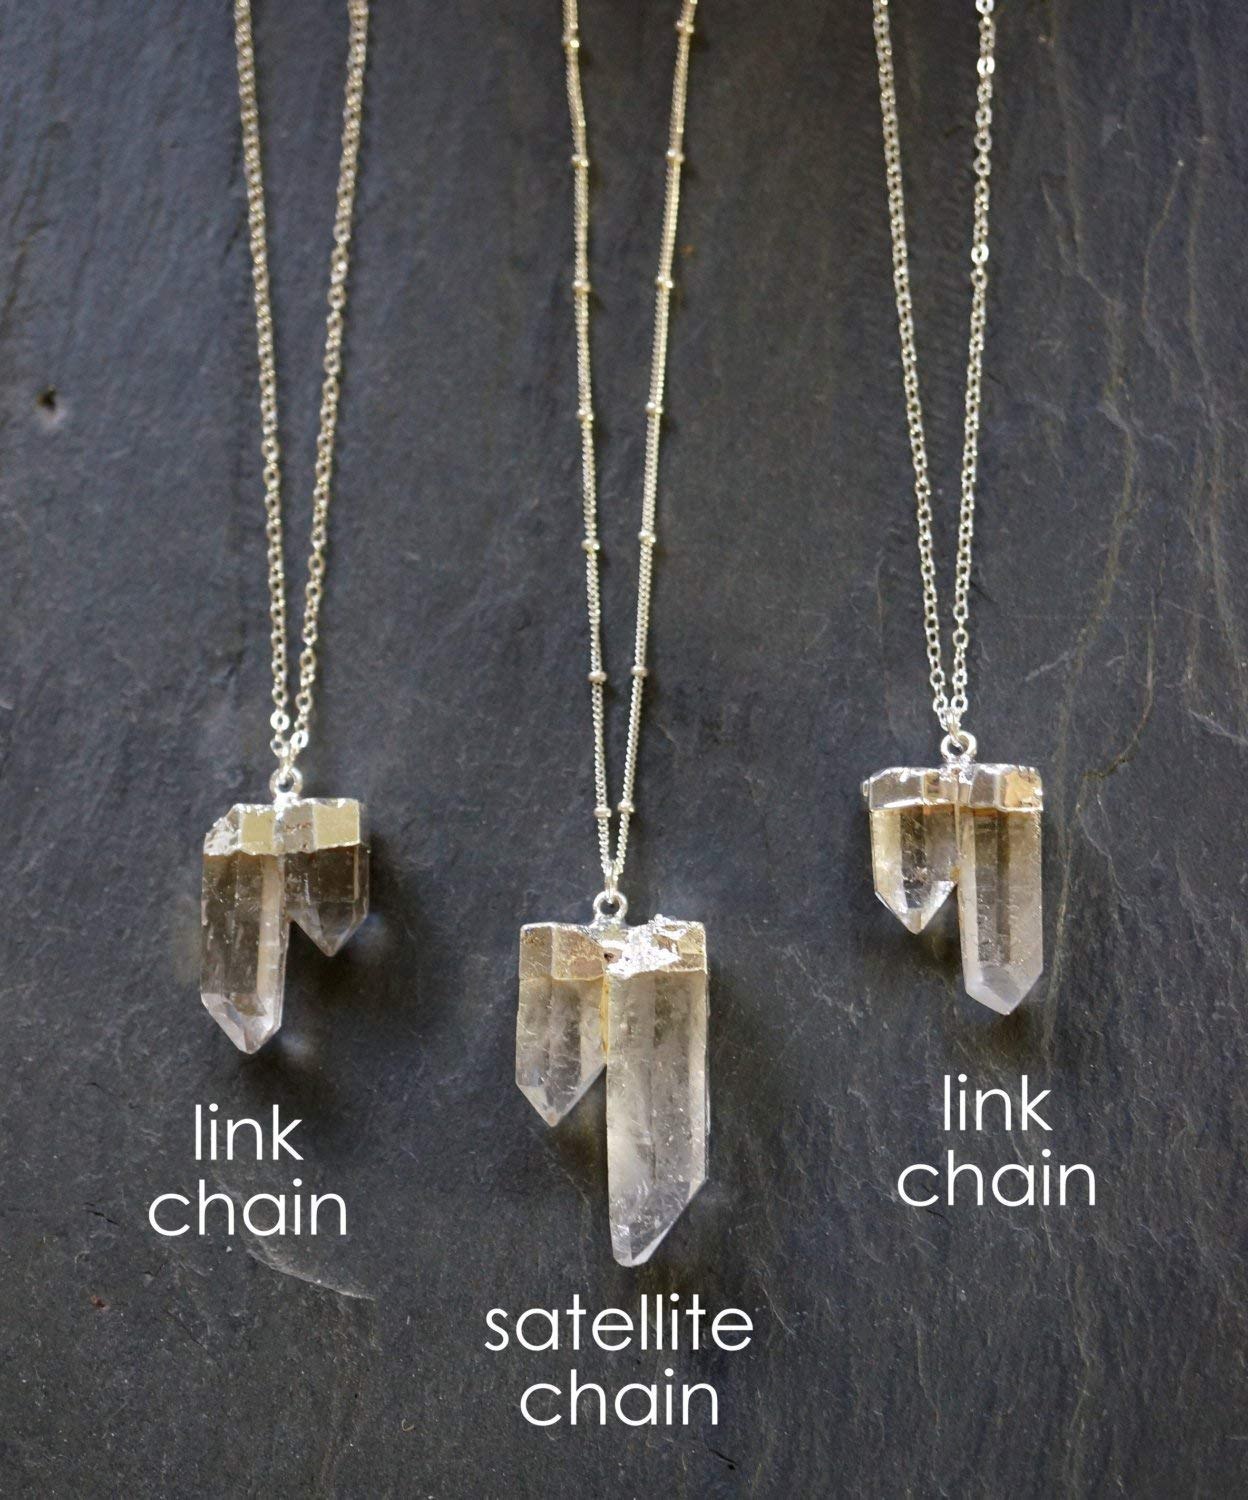 Raw Quartz Crystal Necklace/Quartz Necklace/Double Quartz Points/Custom  Length Chain